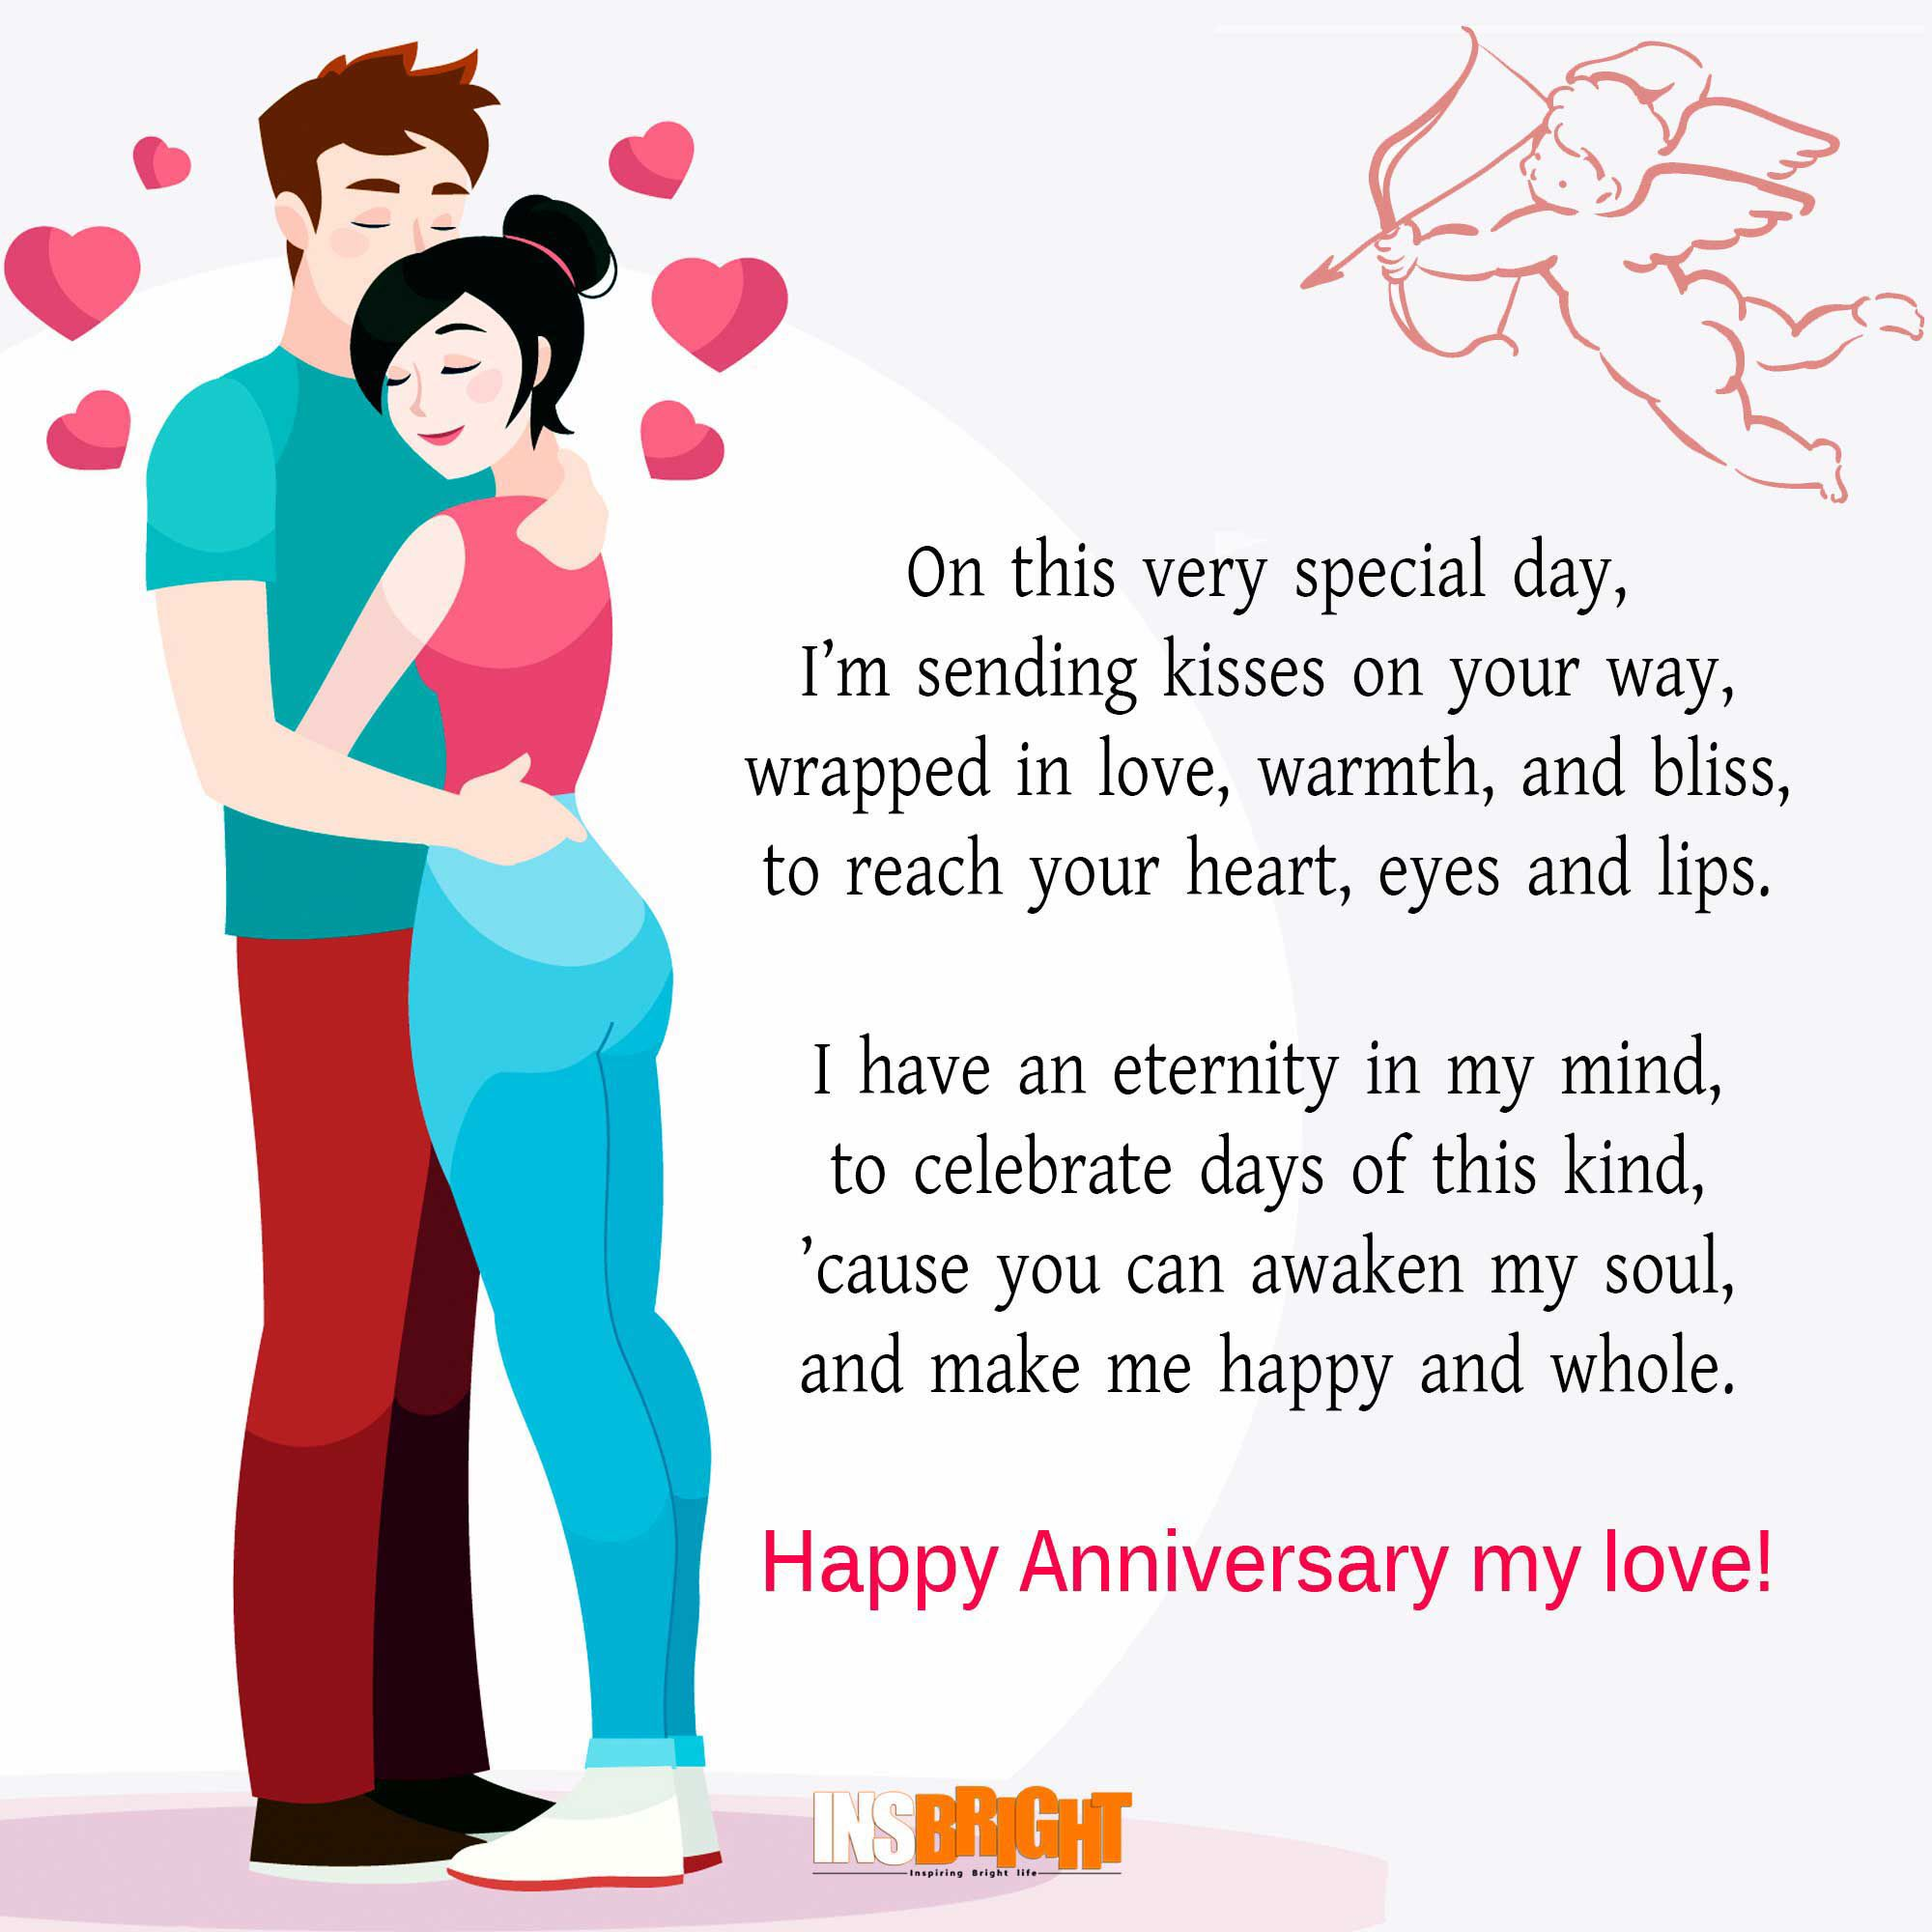 Cute Happy Anniversary Poems For Him or Her With Images